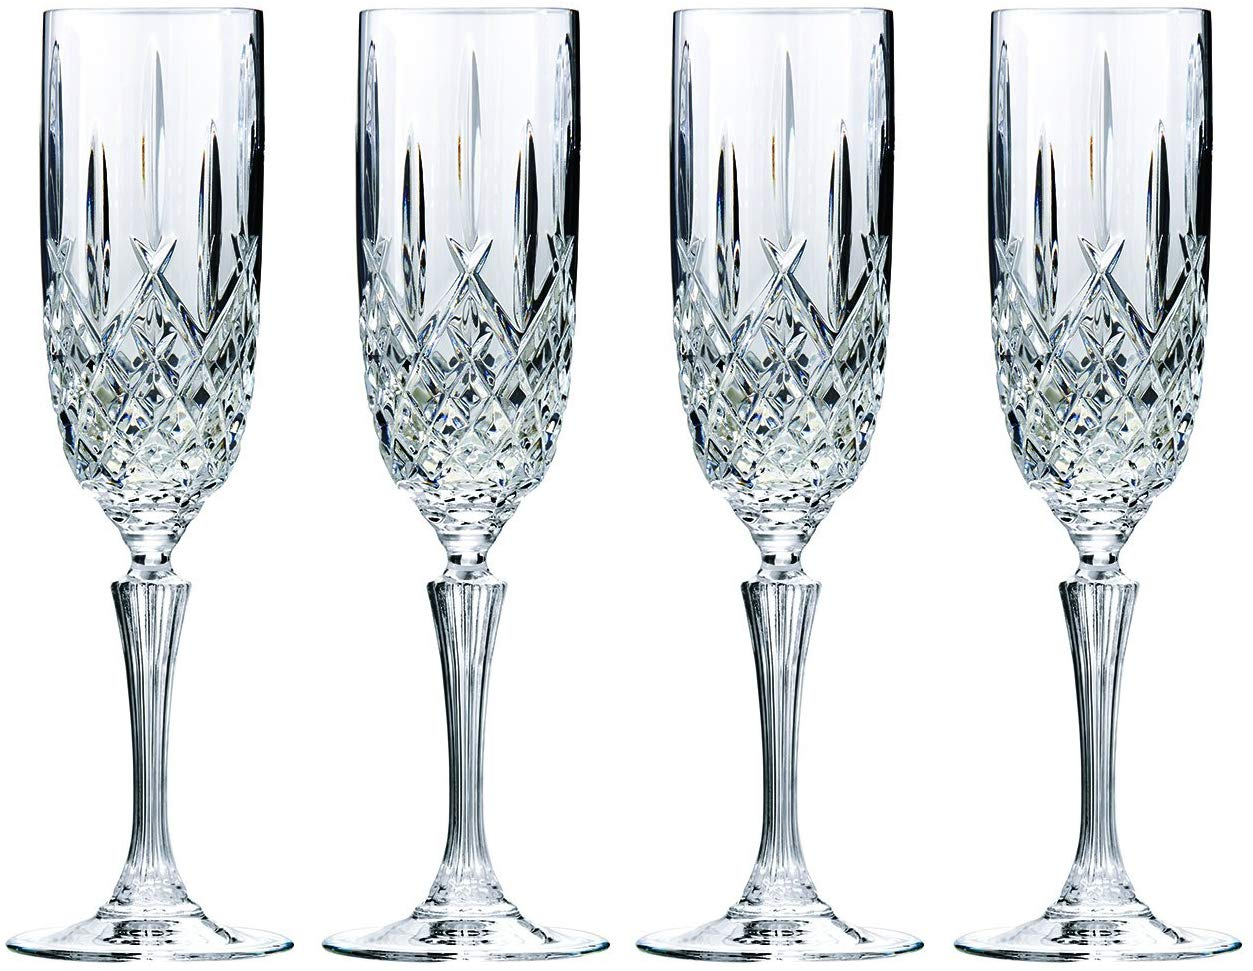 Waterford's Markham champagne flutes